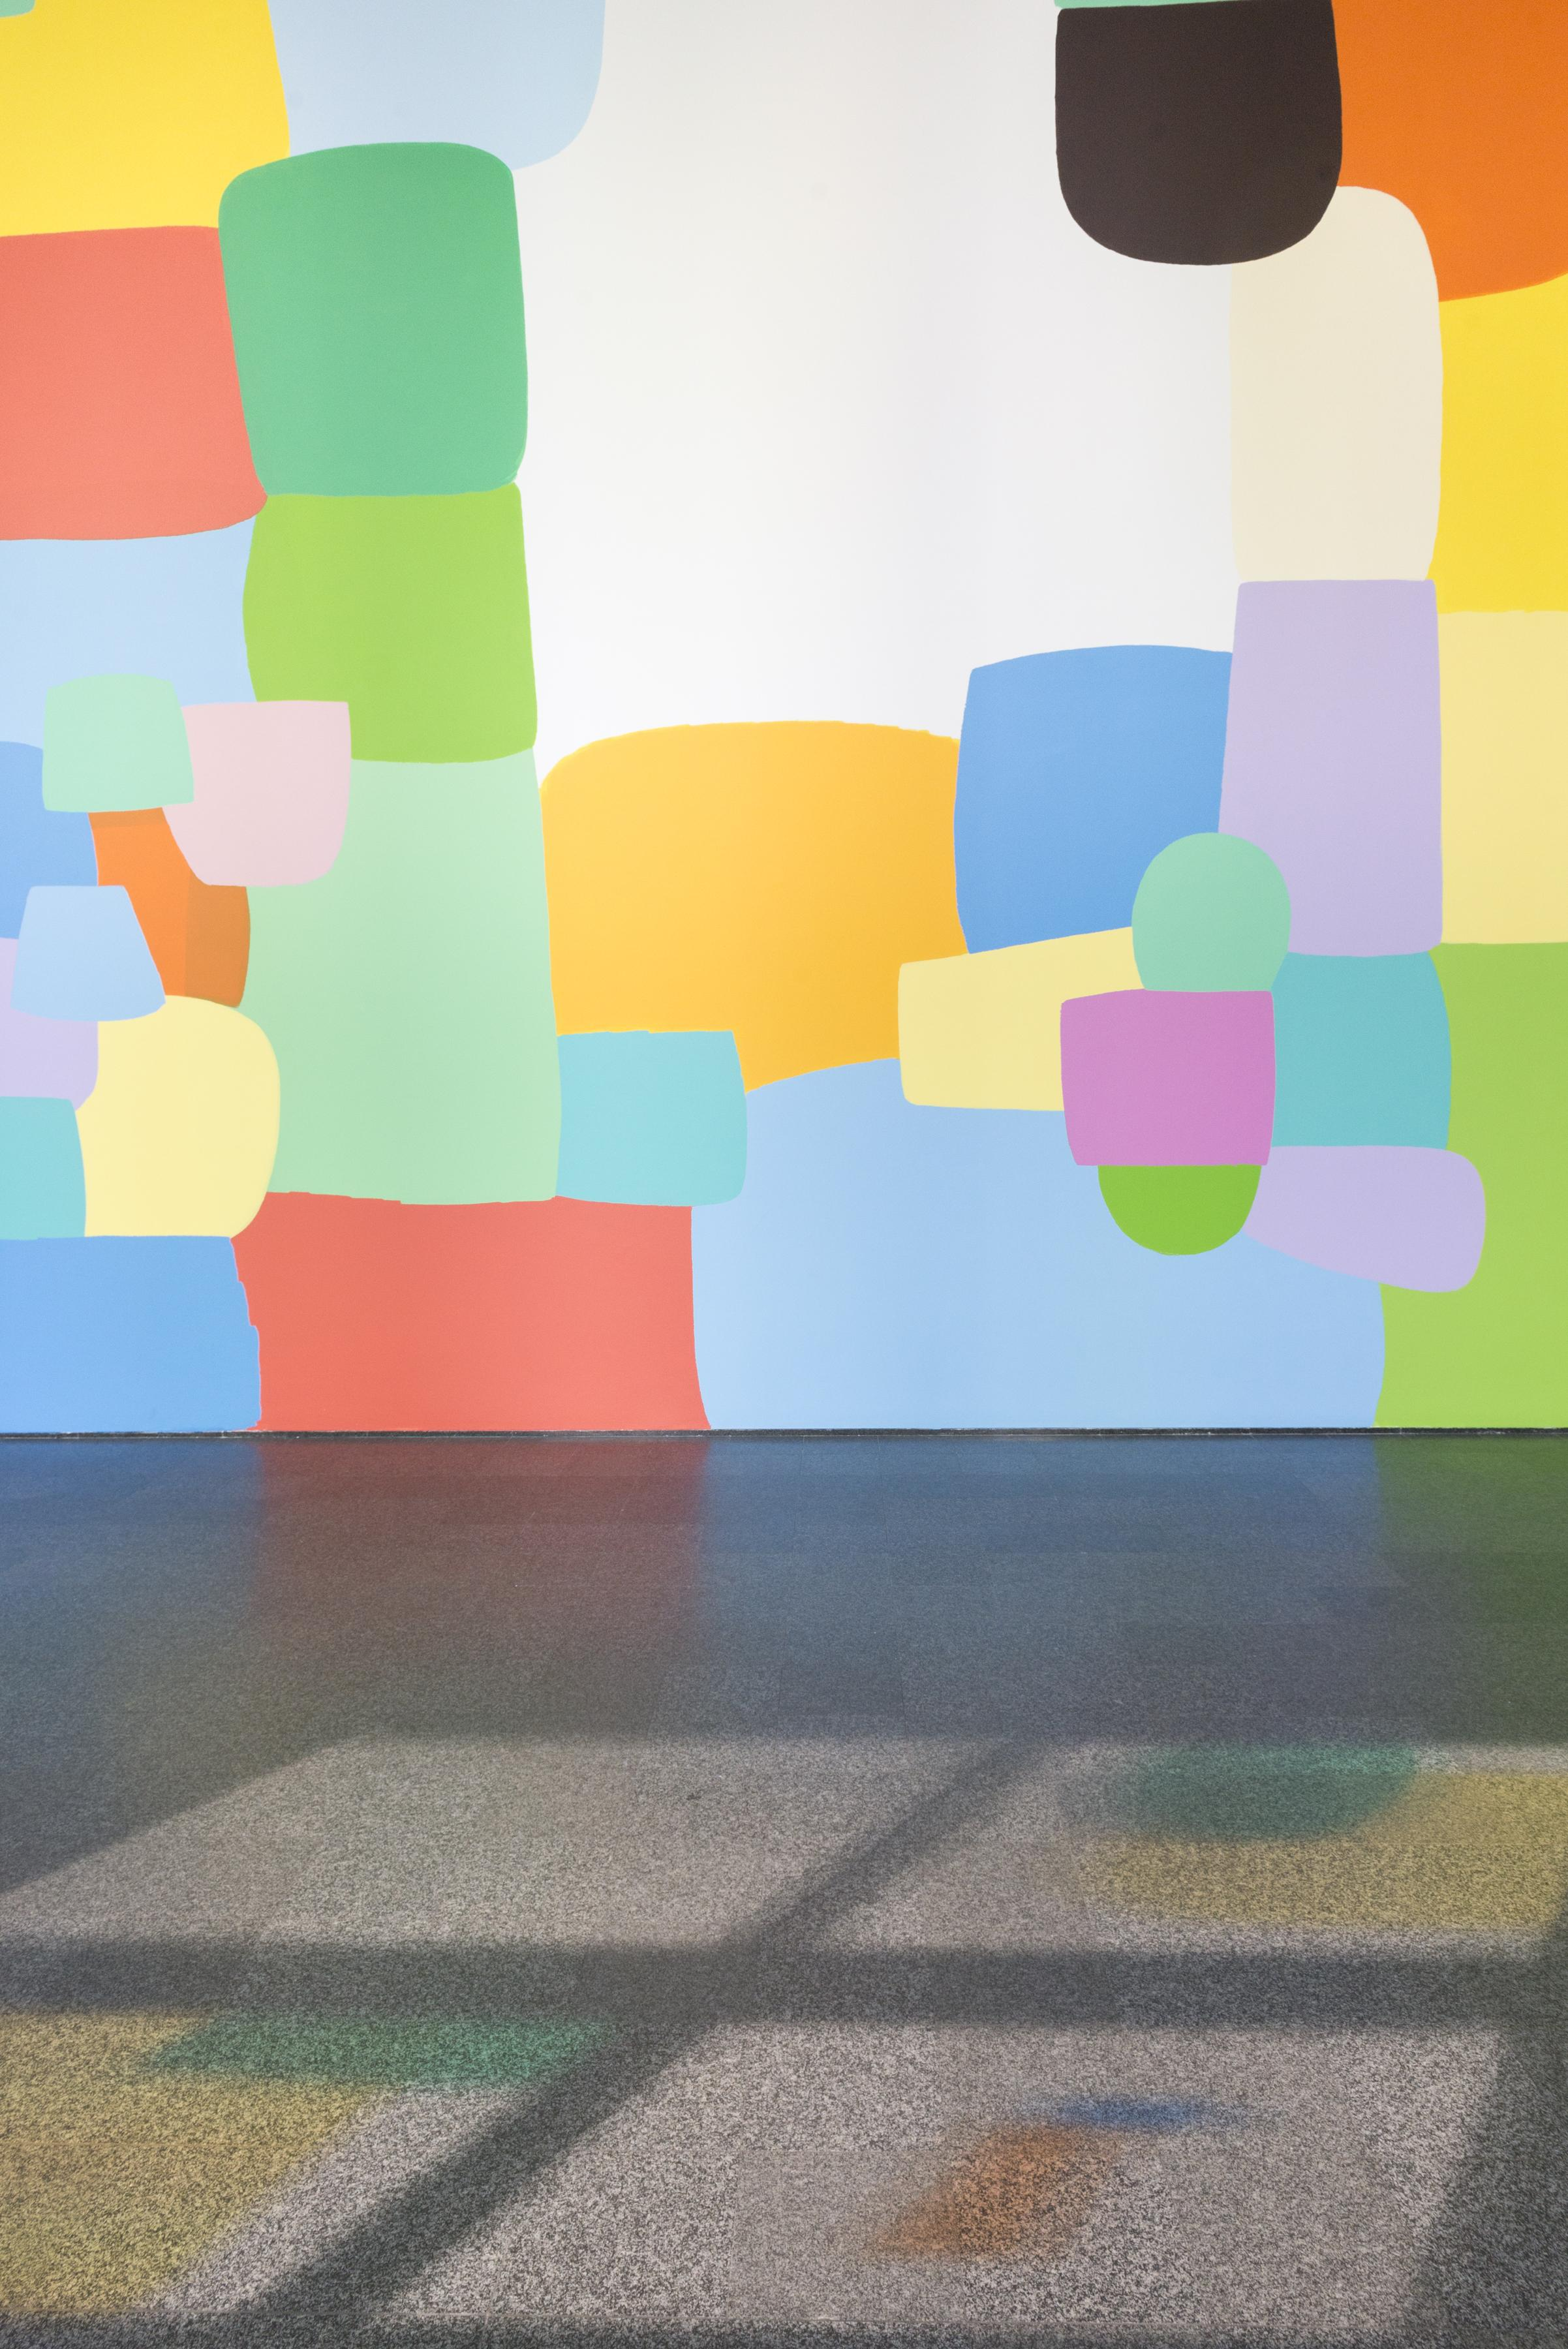 A large wall features a prominent, colorful mural. Light shining from windows casts colorful shadows on the floor.